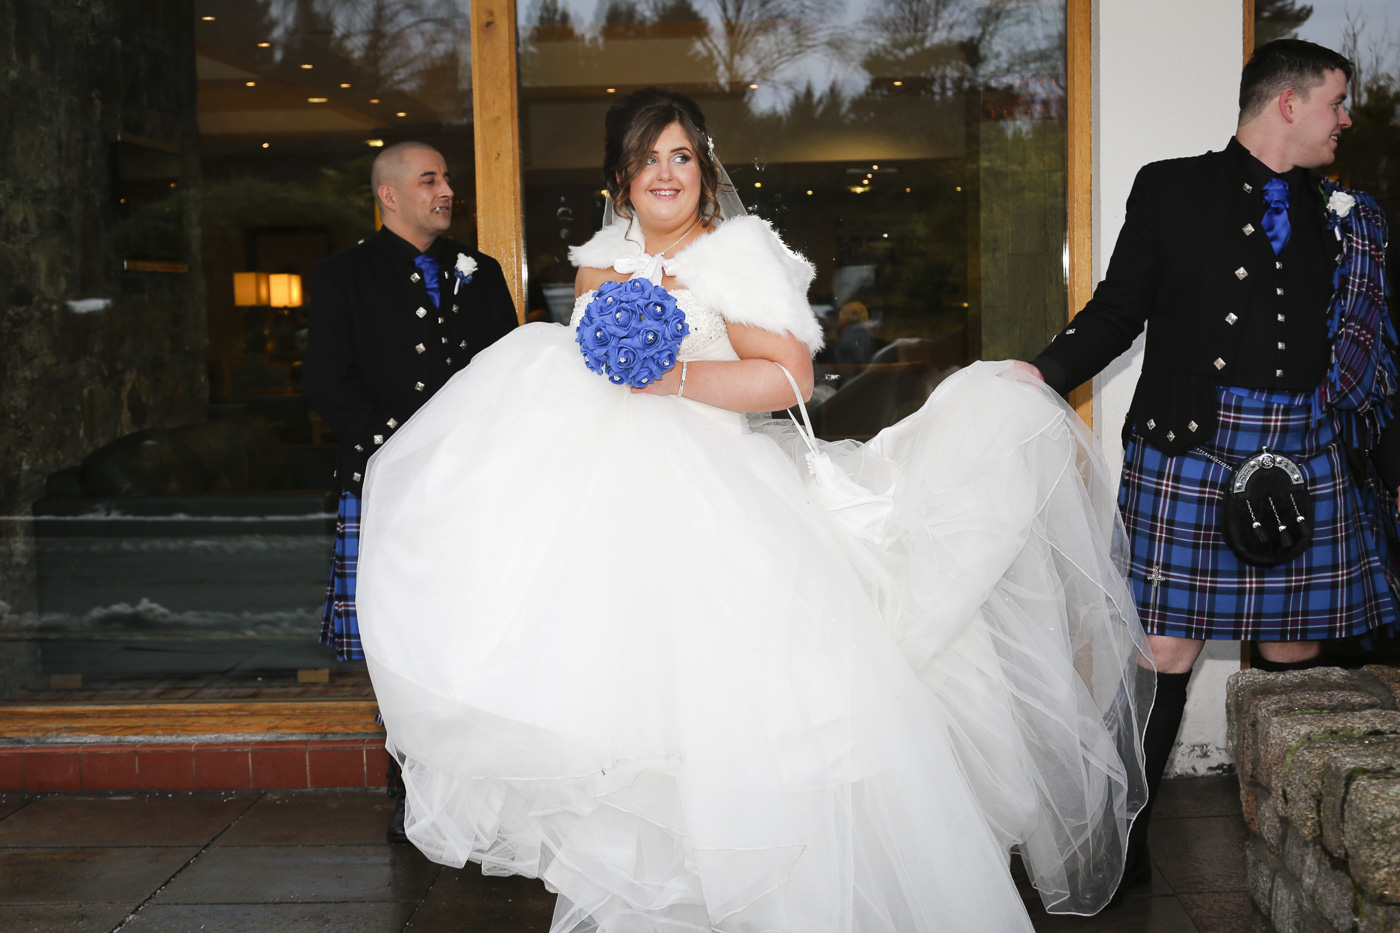 wedding-photography-at-the-hilton-coylumbridge-aviemore-8004